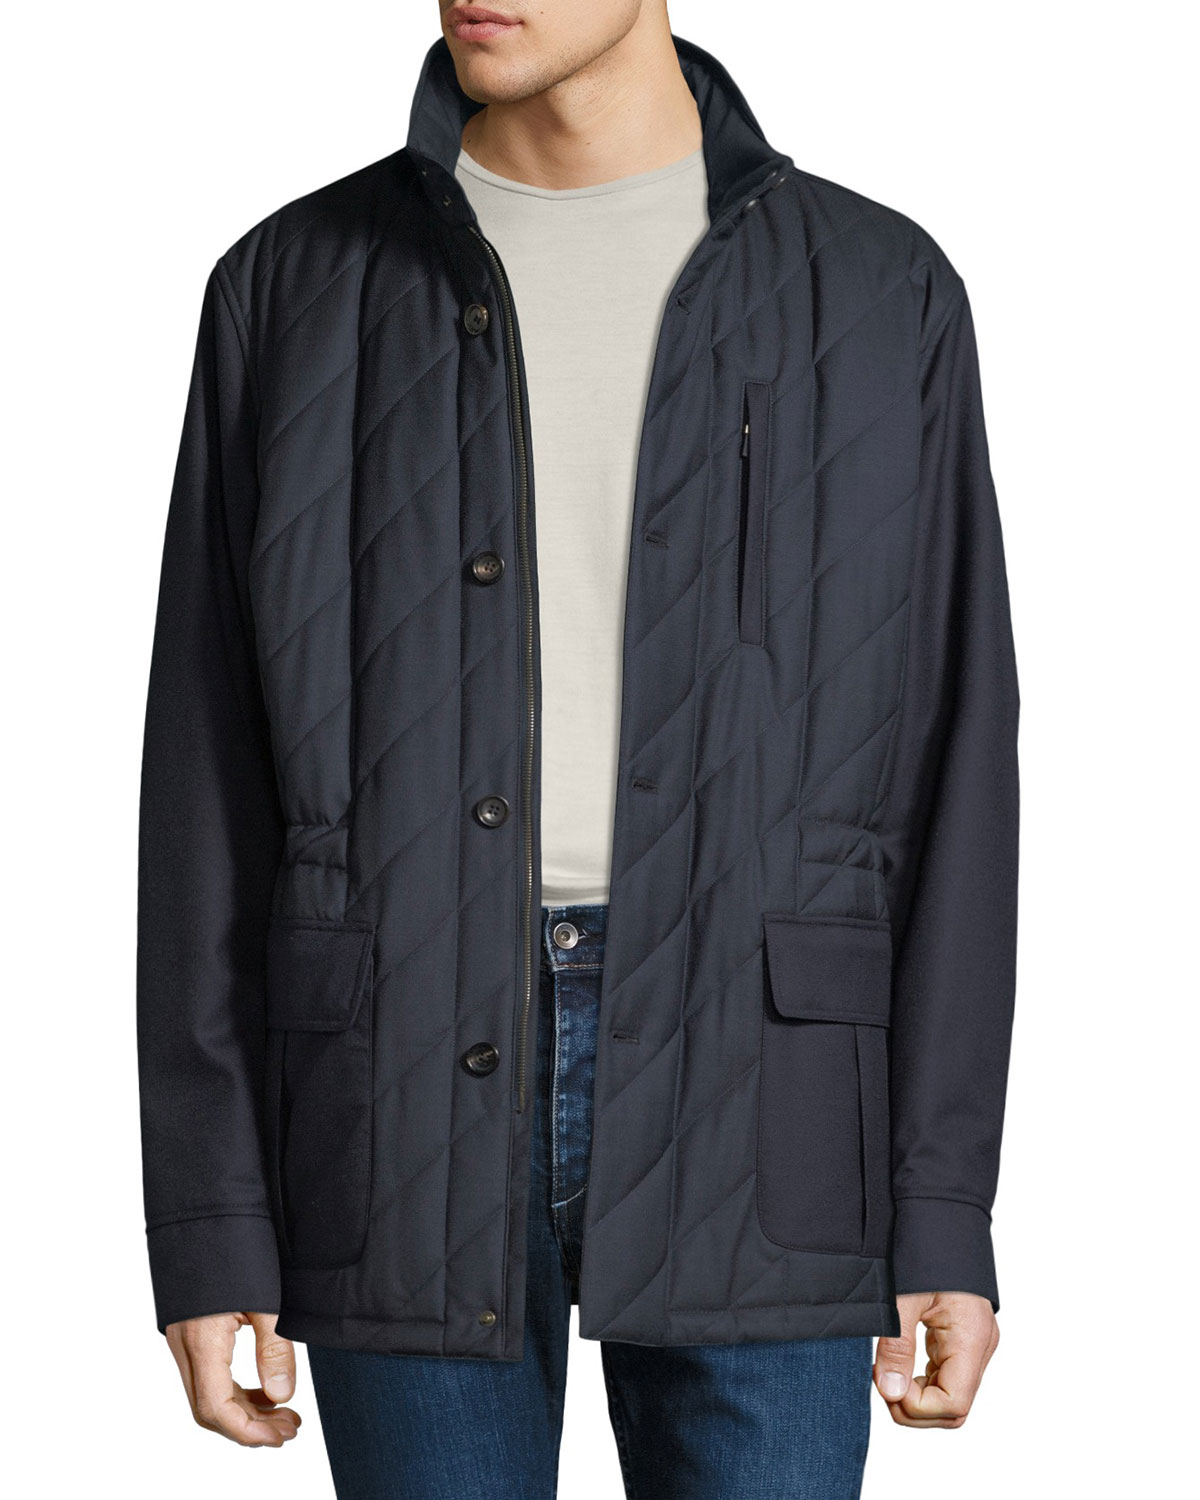 LUCIANO BARBERA Men'S Quilted Wool Field Jacket With Packaway Hood in Blue